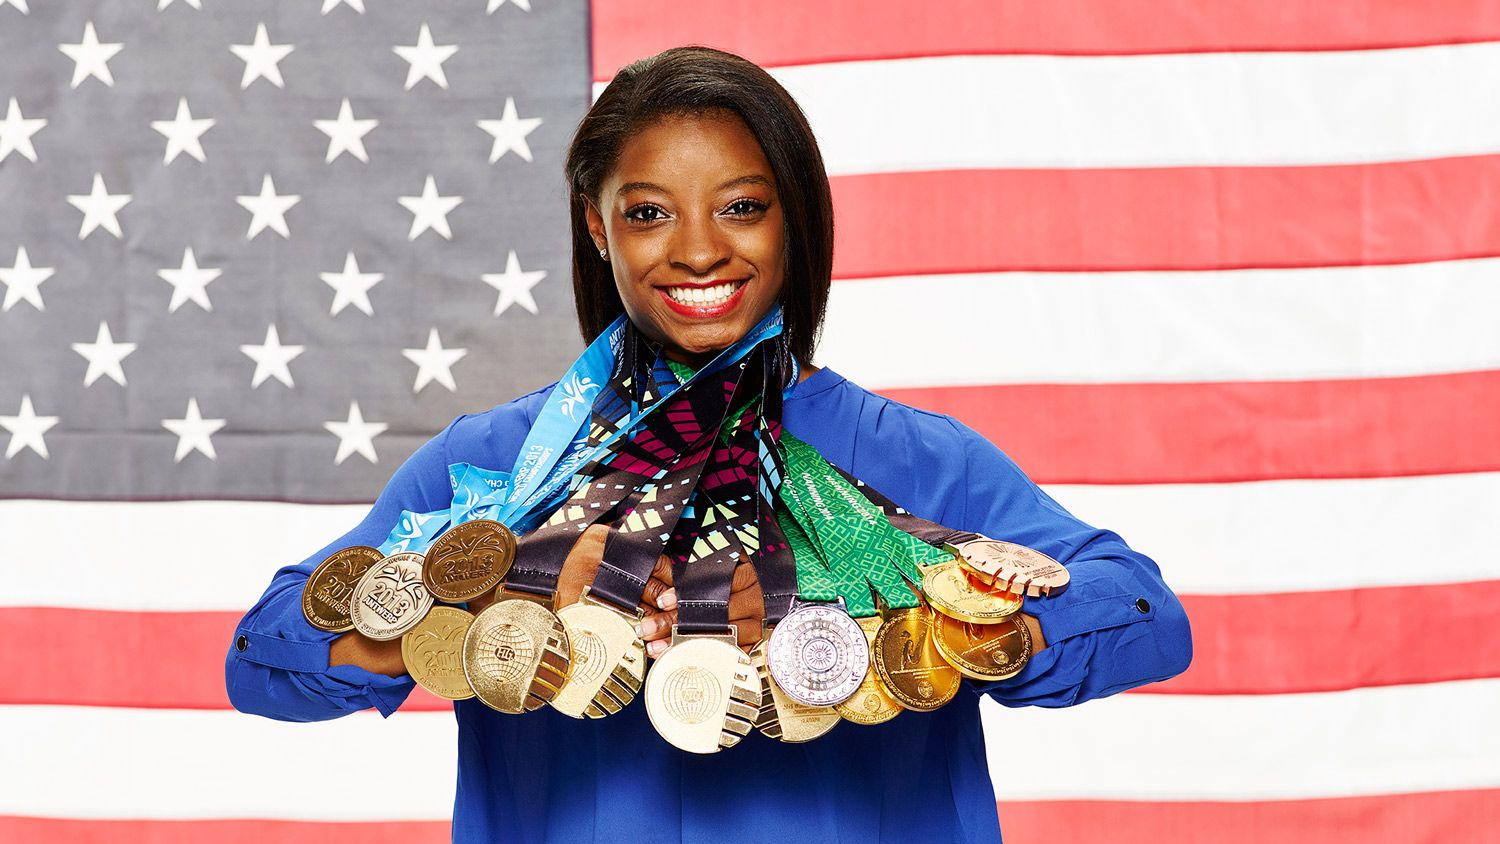 What We Can Learn From Simone Biles With Images Simone Biles